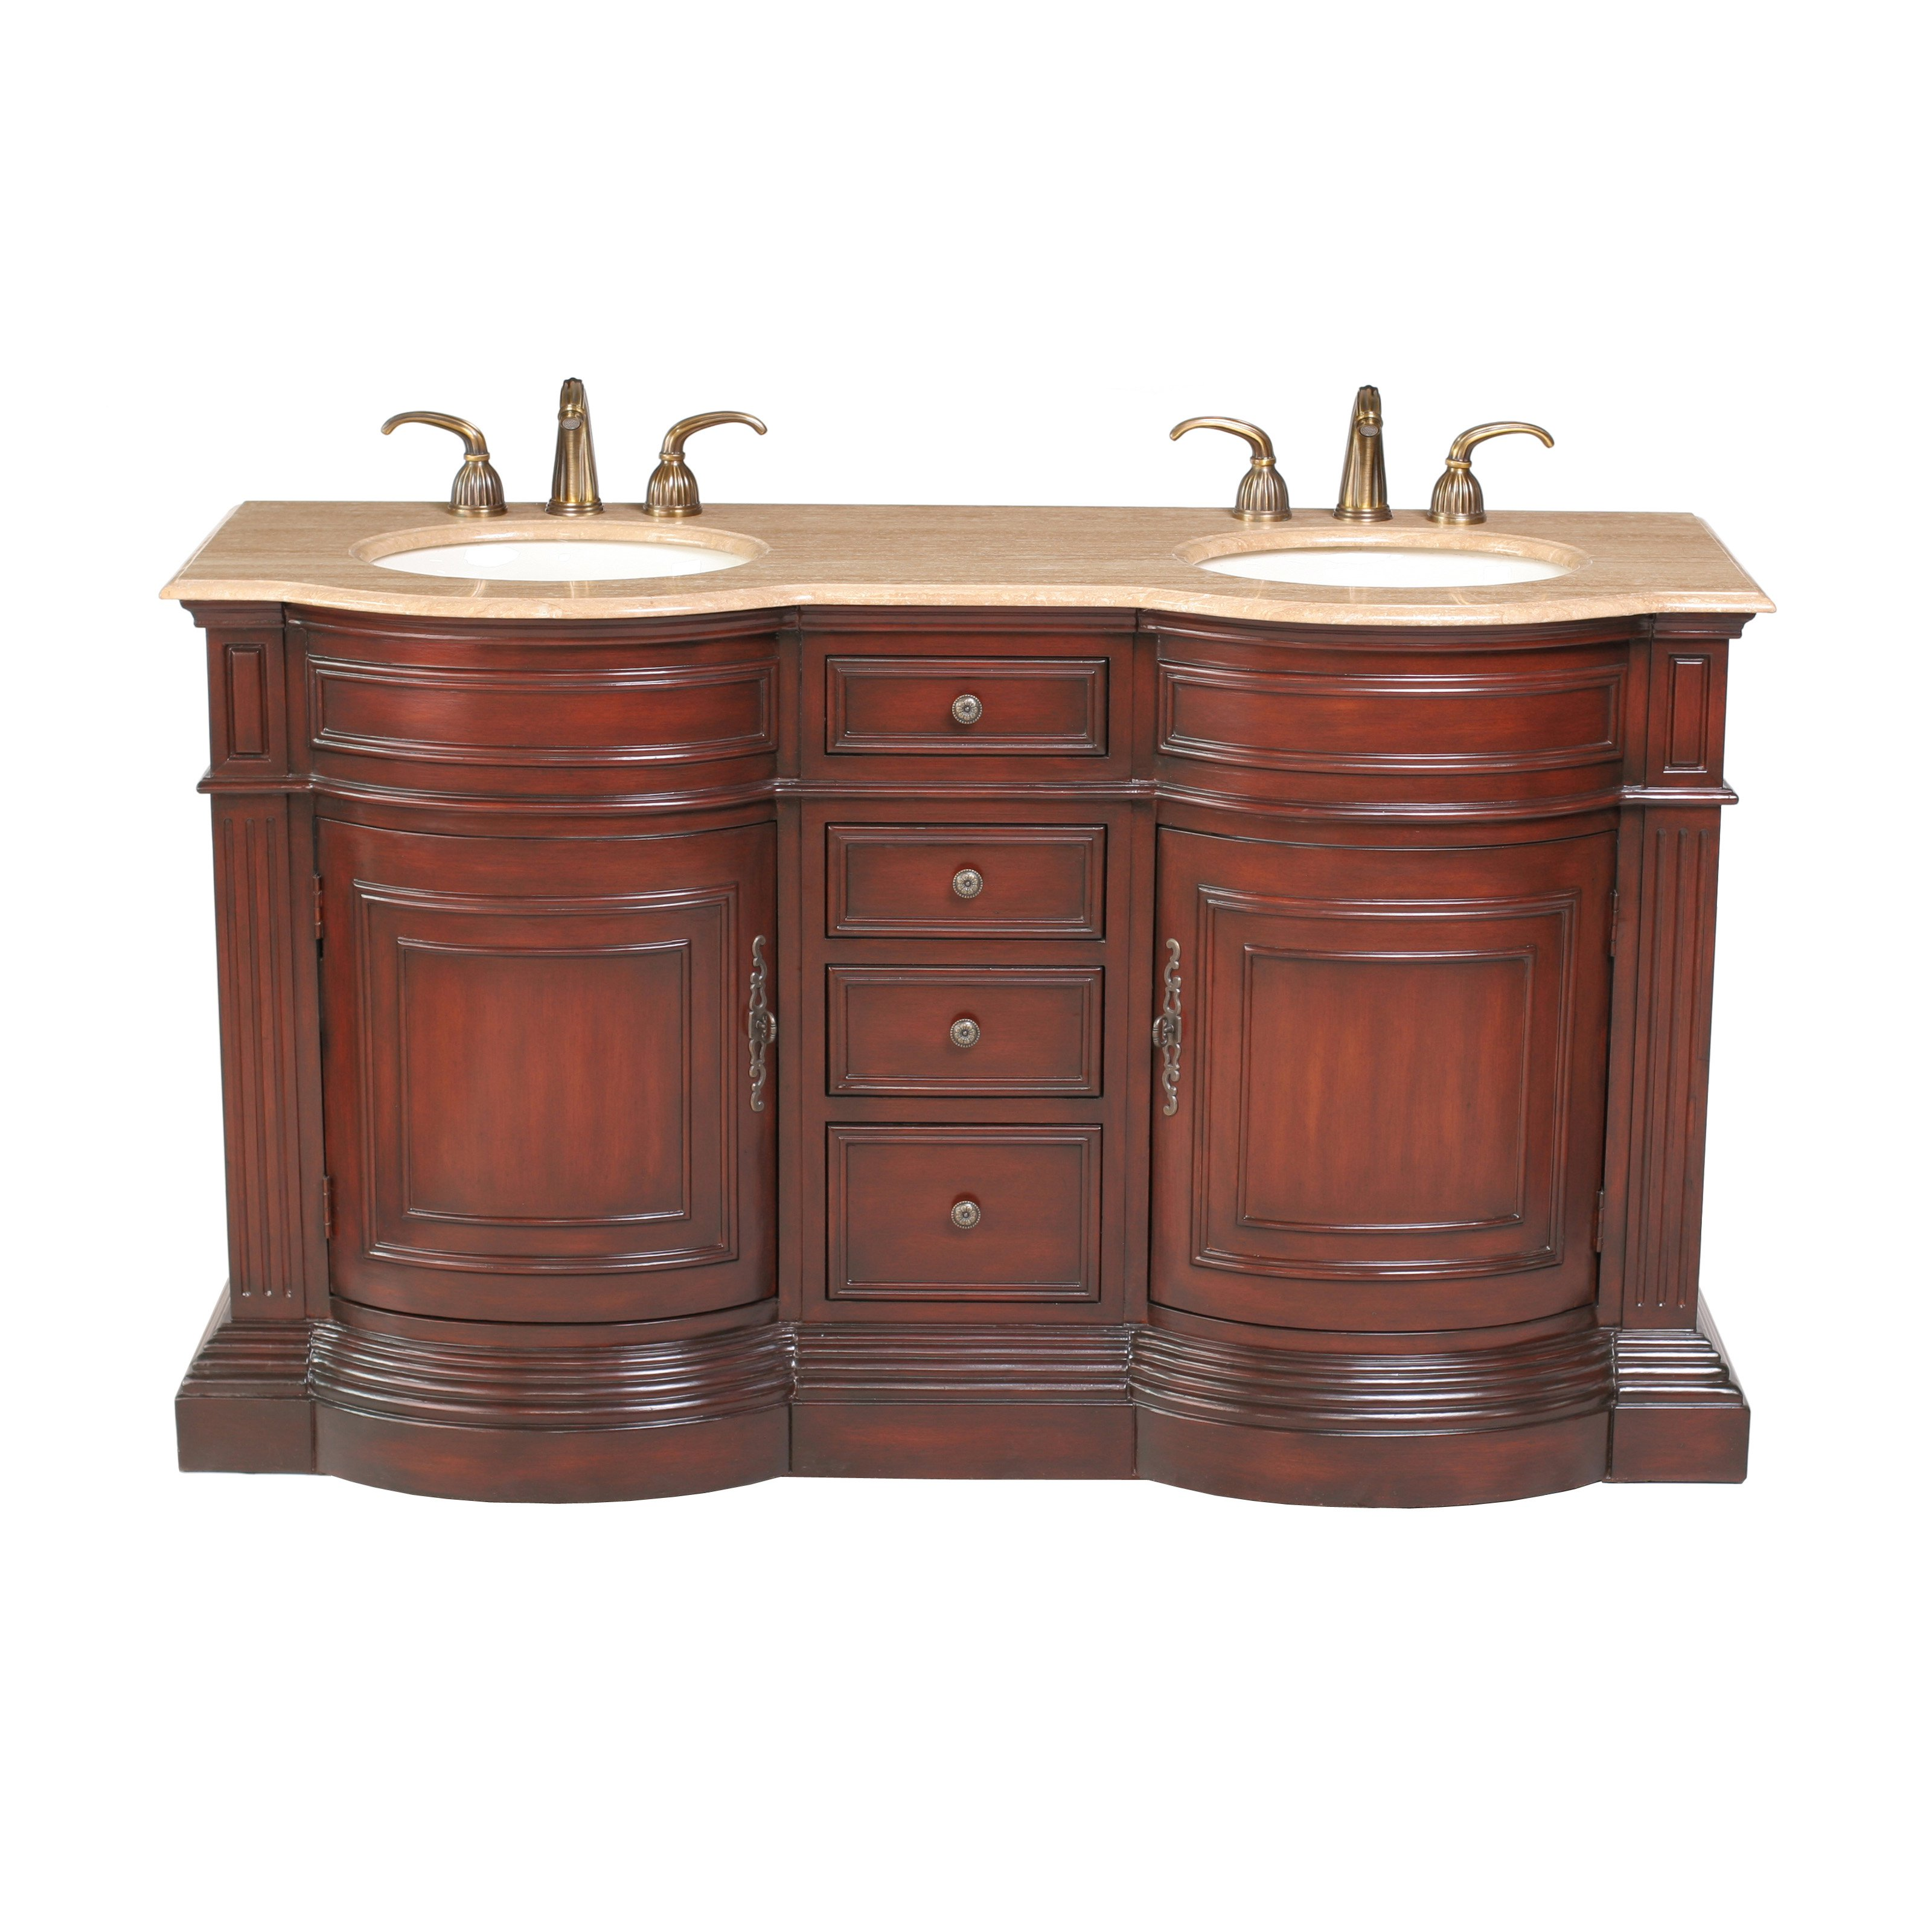 Catherine Single Sink Vanity in Cherry Finish